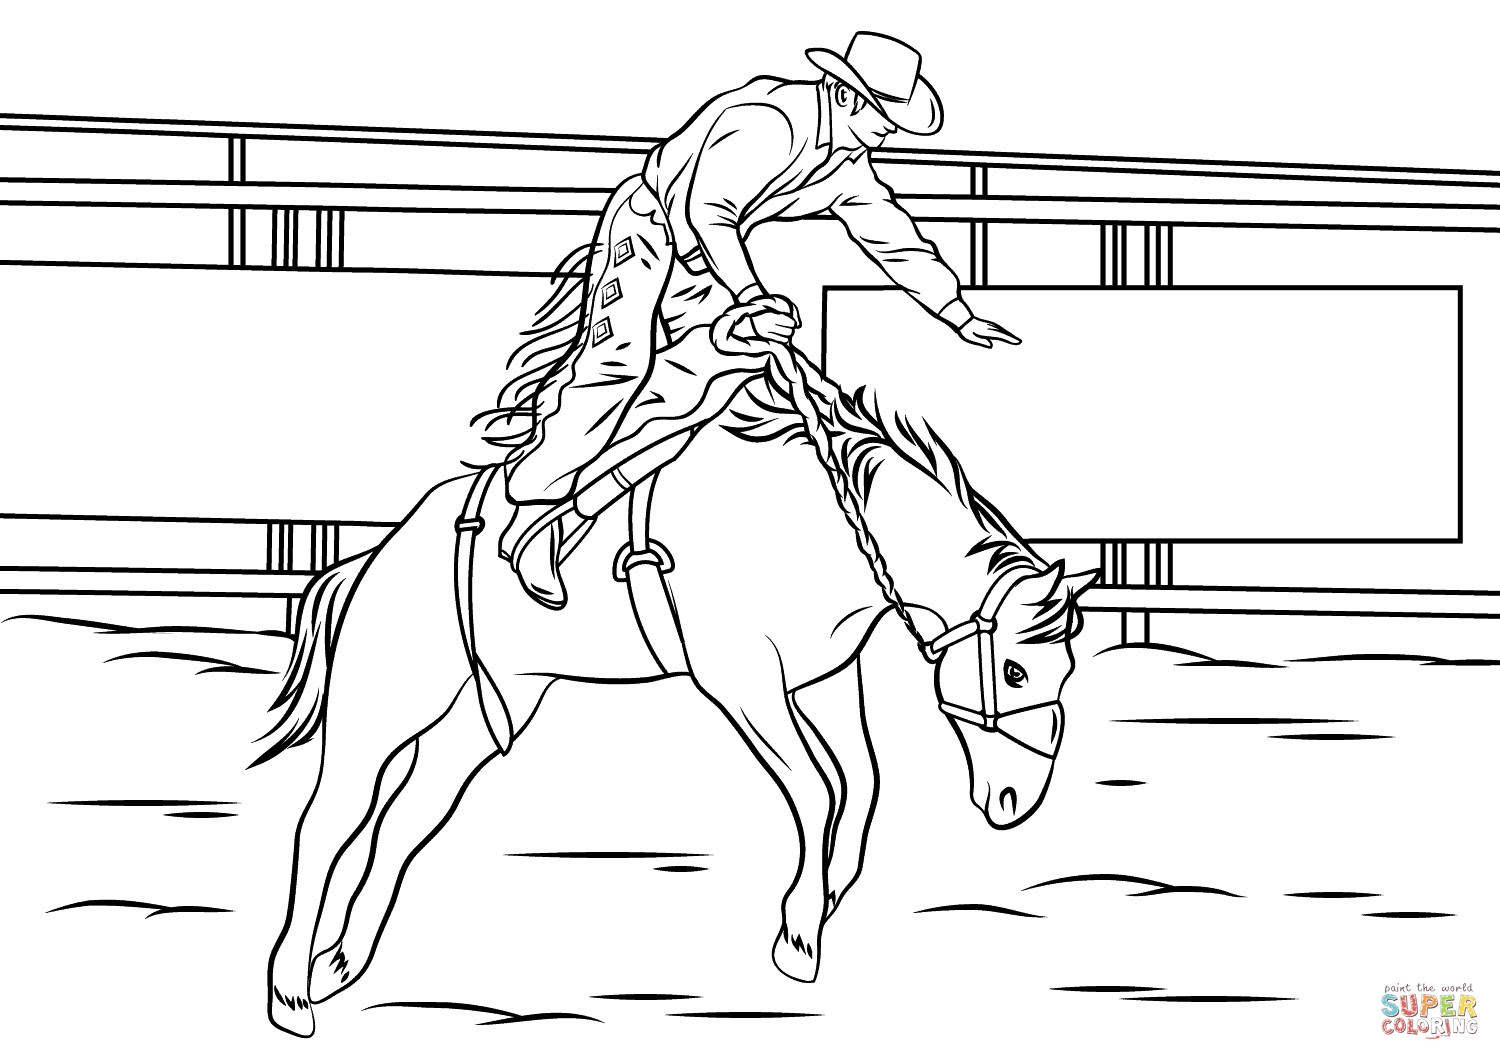 Bull Riding Coloring Pages  Bull Riding Coloring Pages to Print